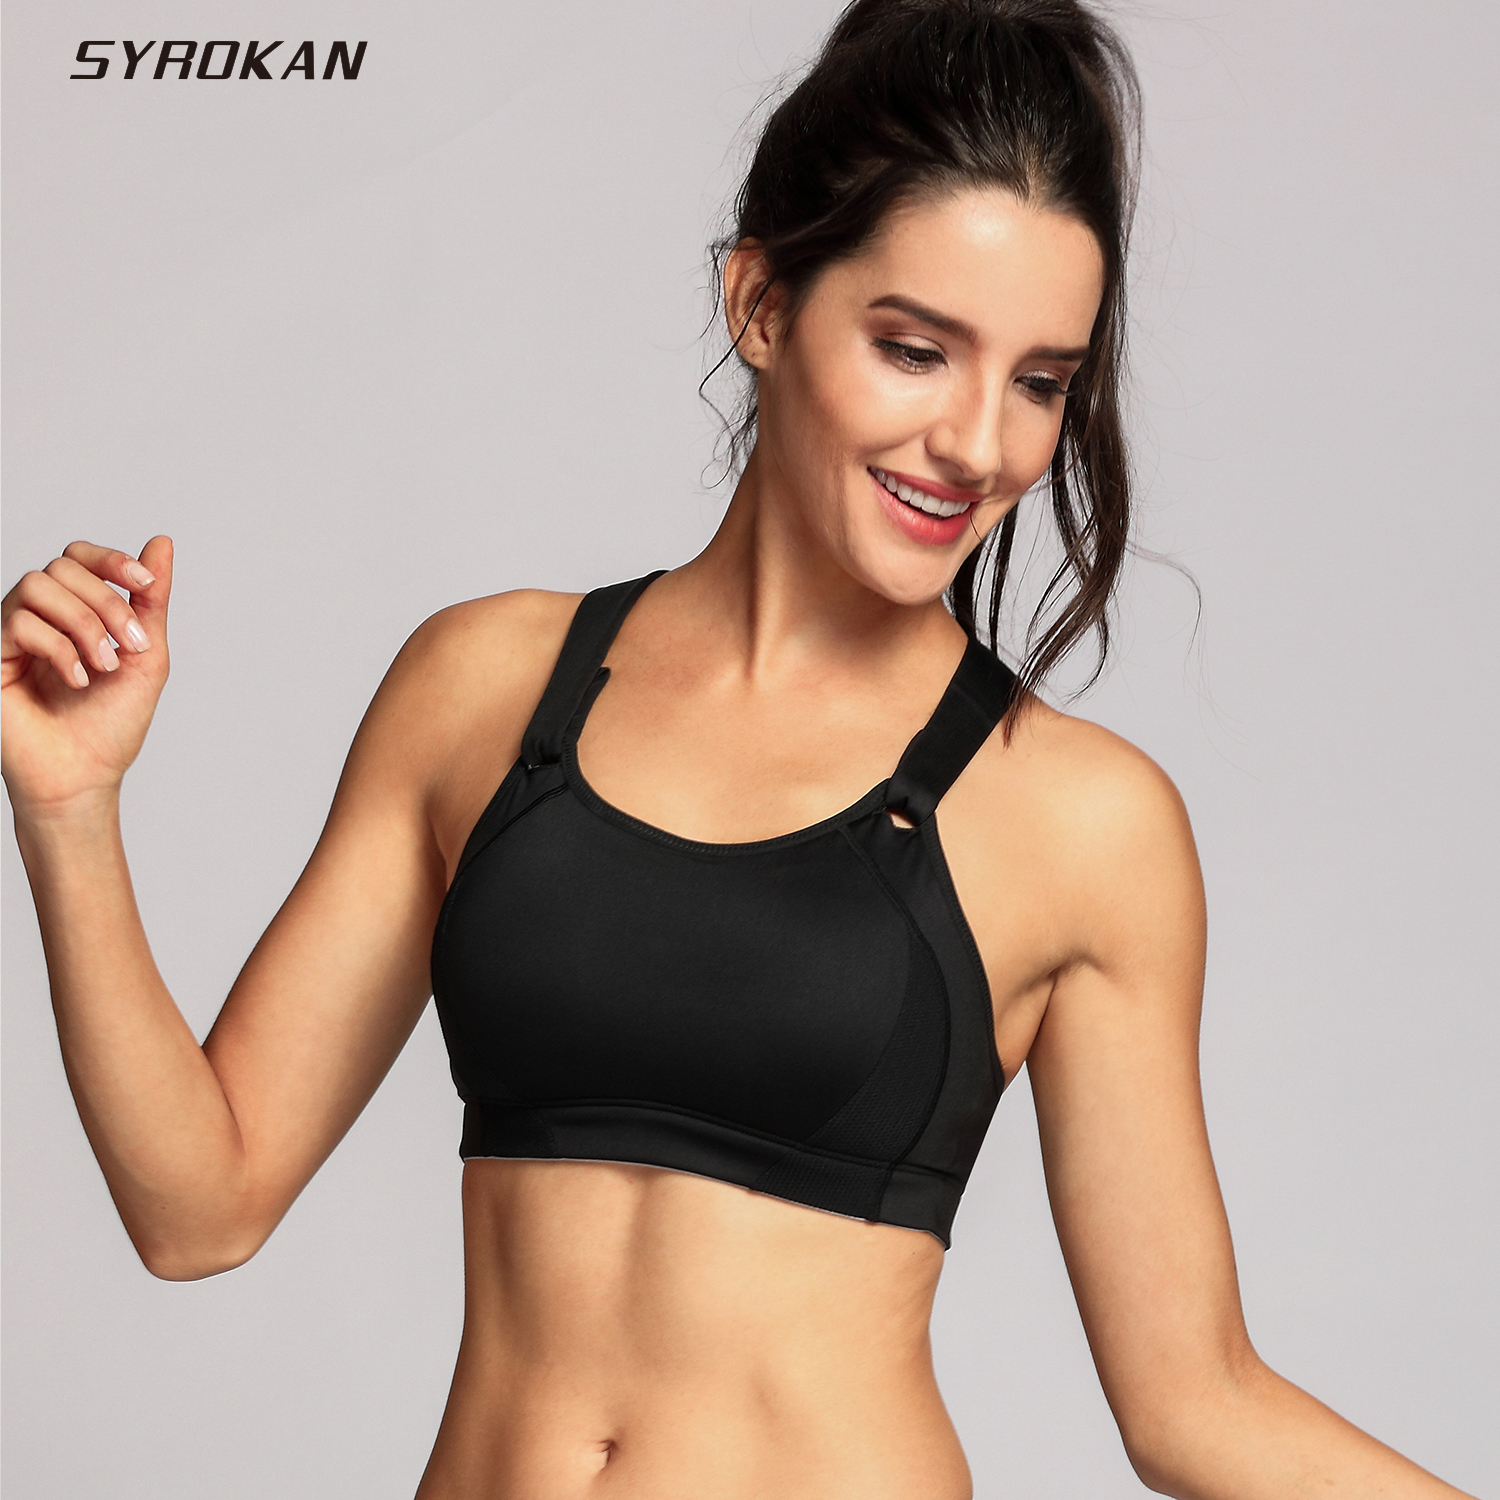 SYROKAN Women's Wire Free High Impact Full Coverage Padded Sports Bra image